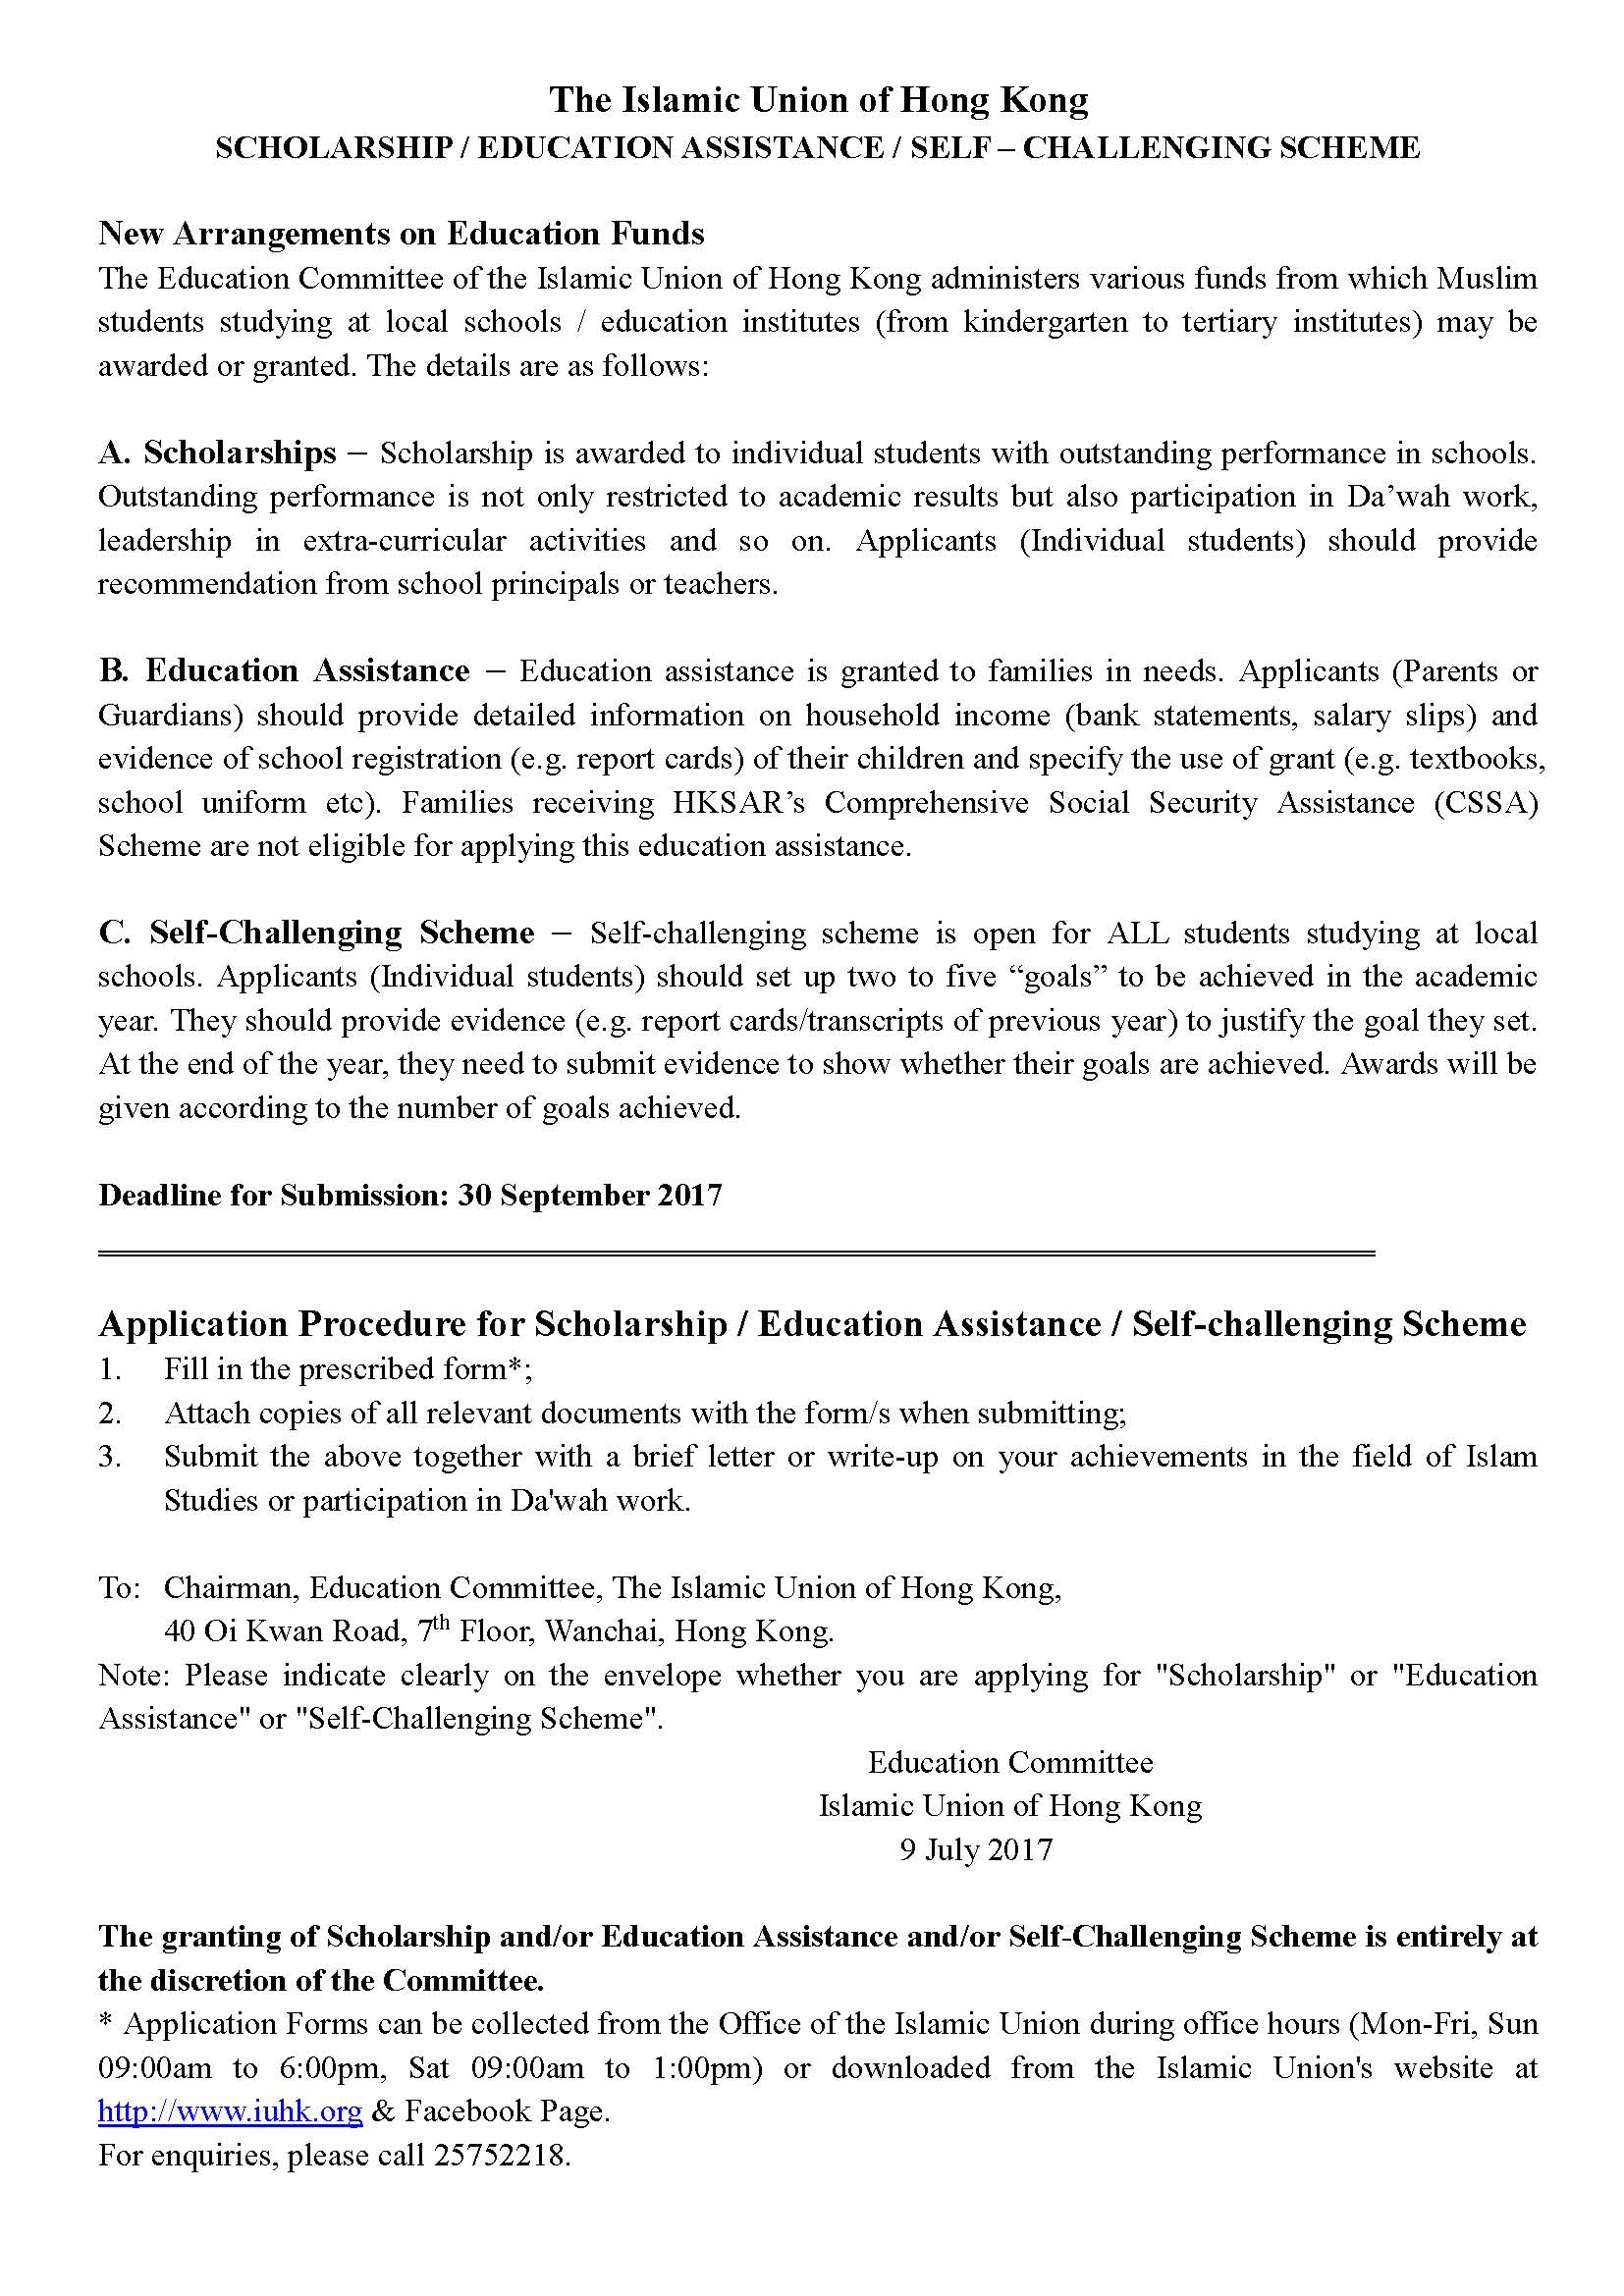 Education Assistance Application Form (For the Year 2017-2018)